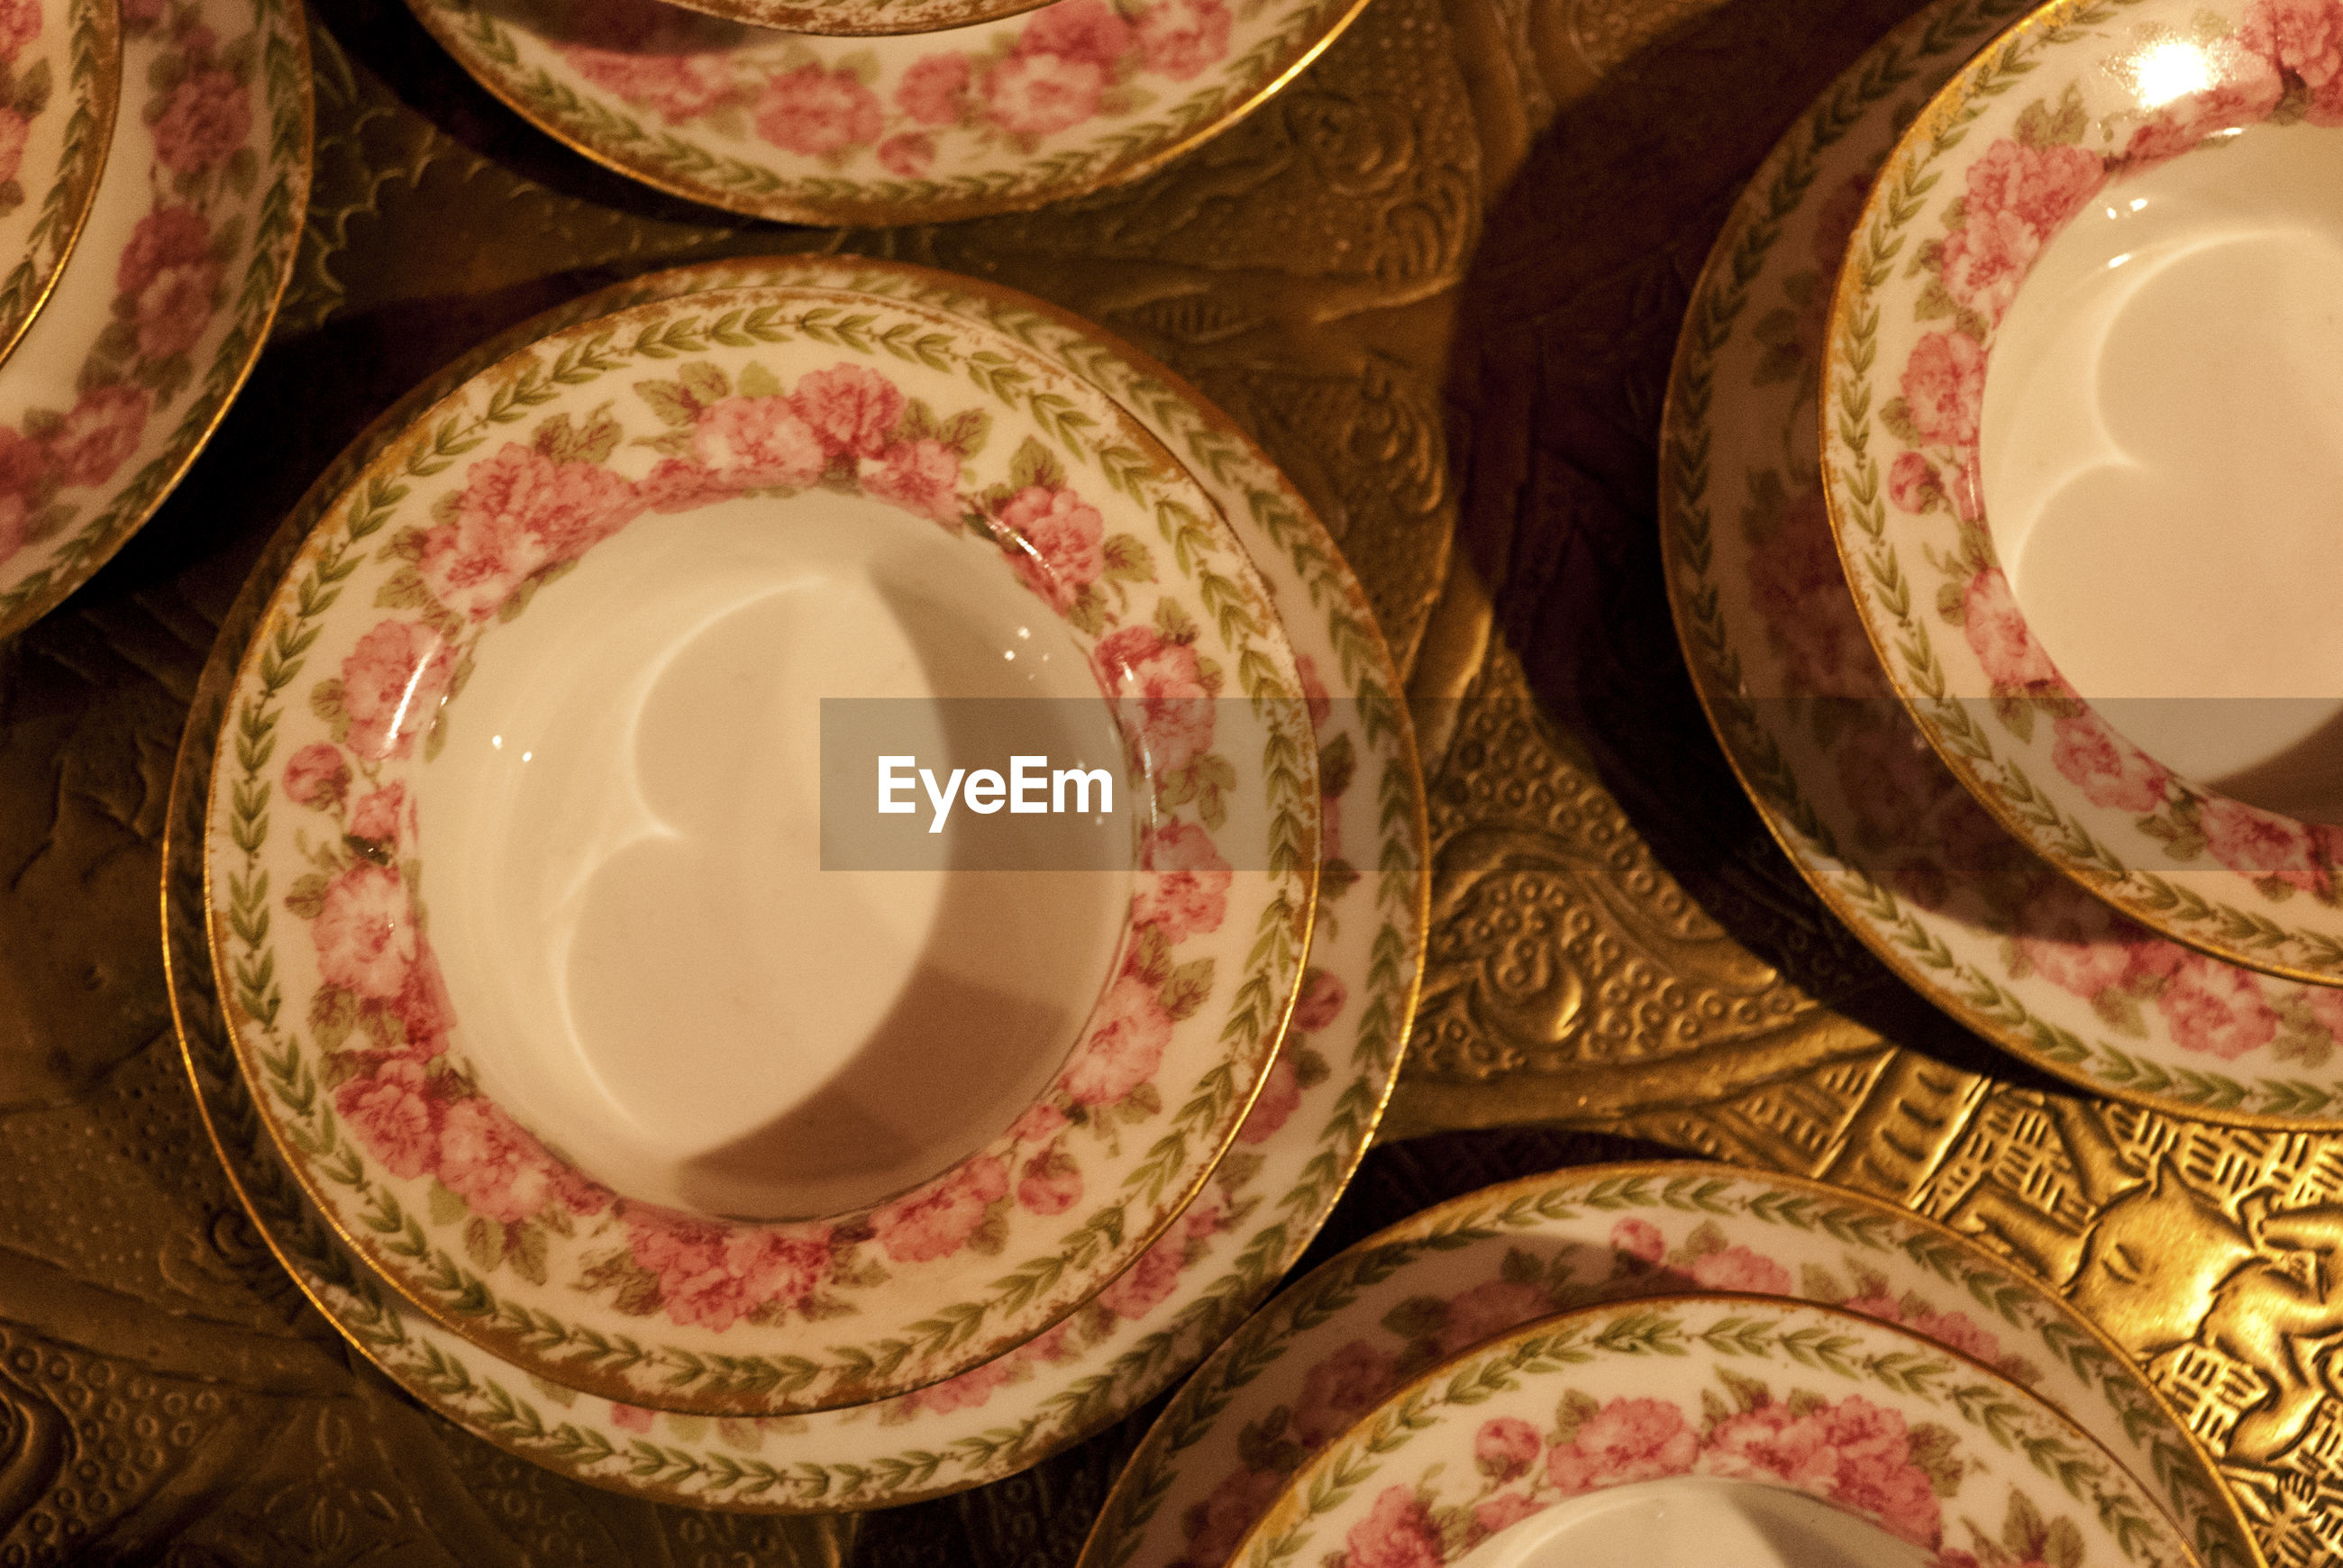 Close-up of porcelain plates on table